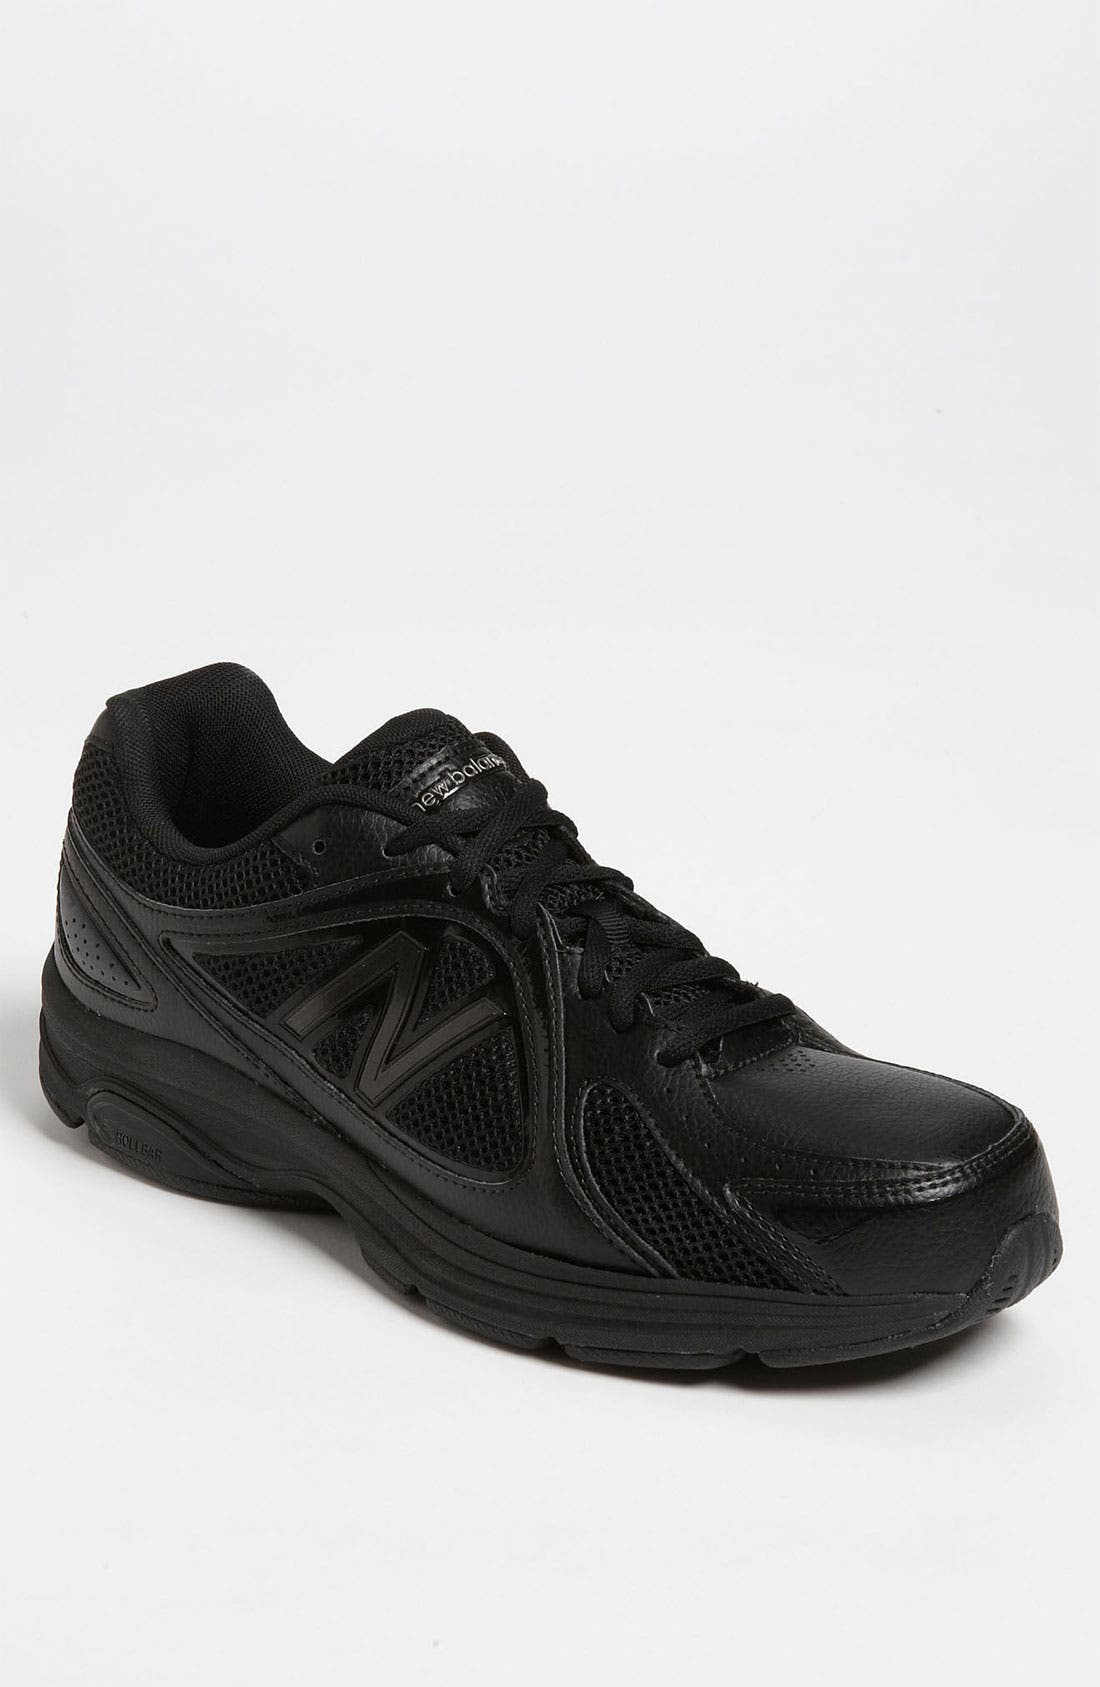 Alternate Image 1 Selected - New Balance '847' Walking Shoe (Men) (Online Only)